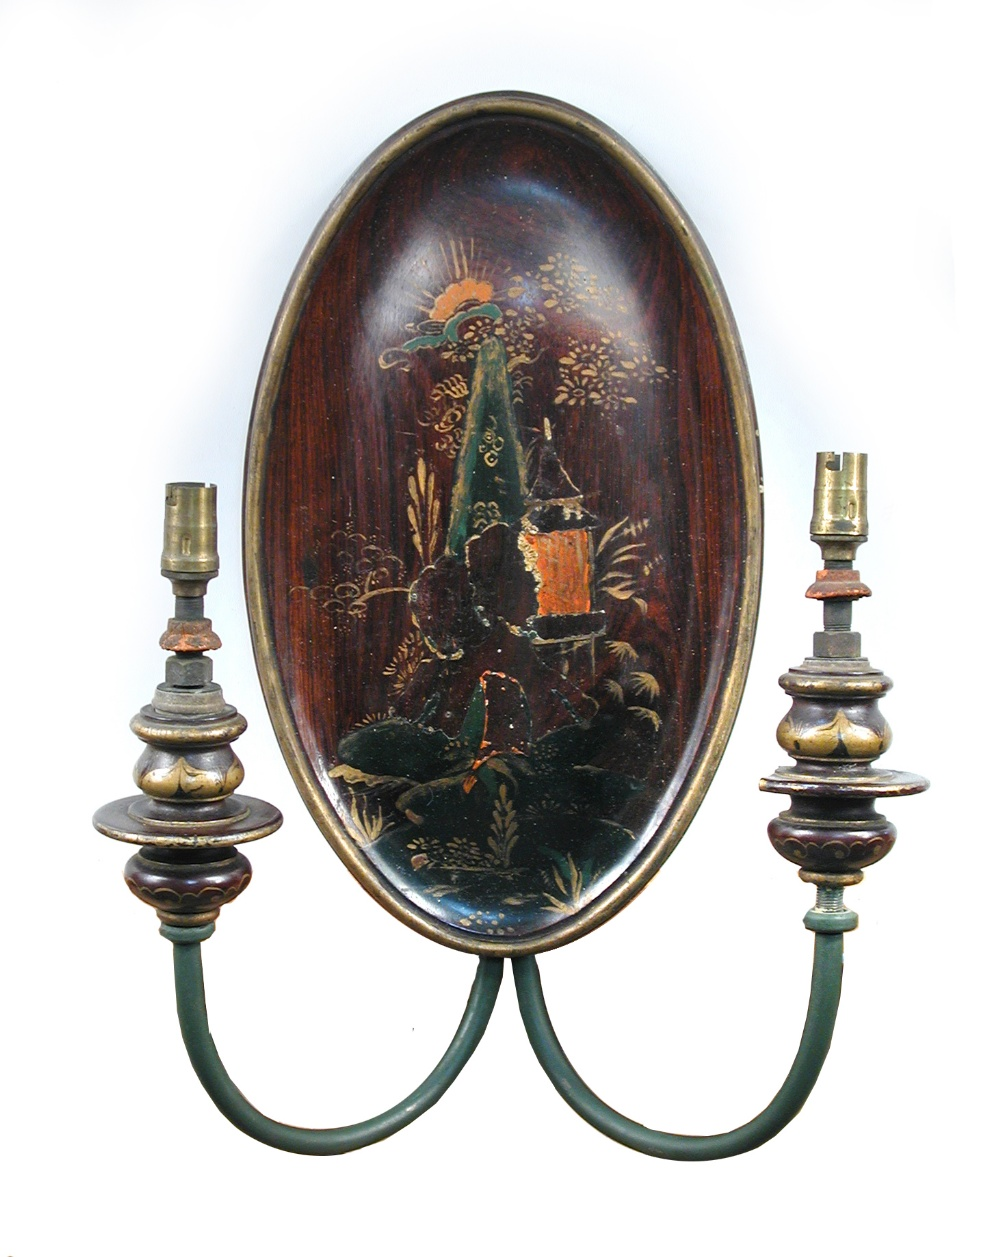 Lot 636A - A set of four 1920's Chinoiserie wall lights, the oval mahogany back plates lacquered with Chinese